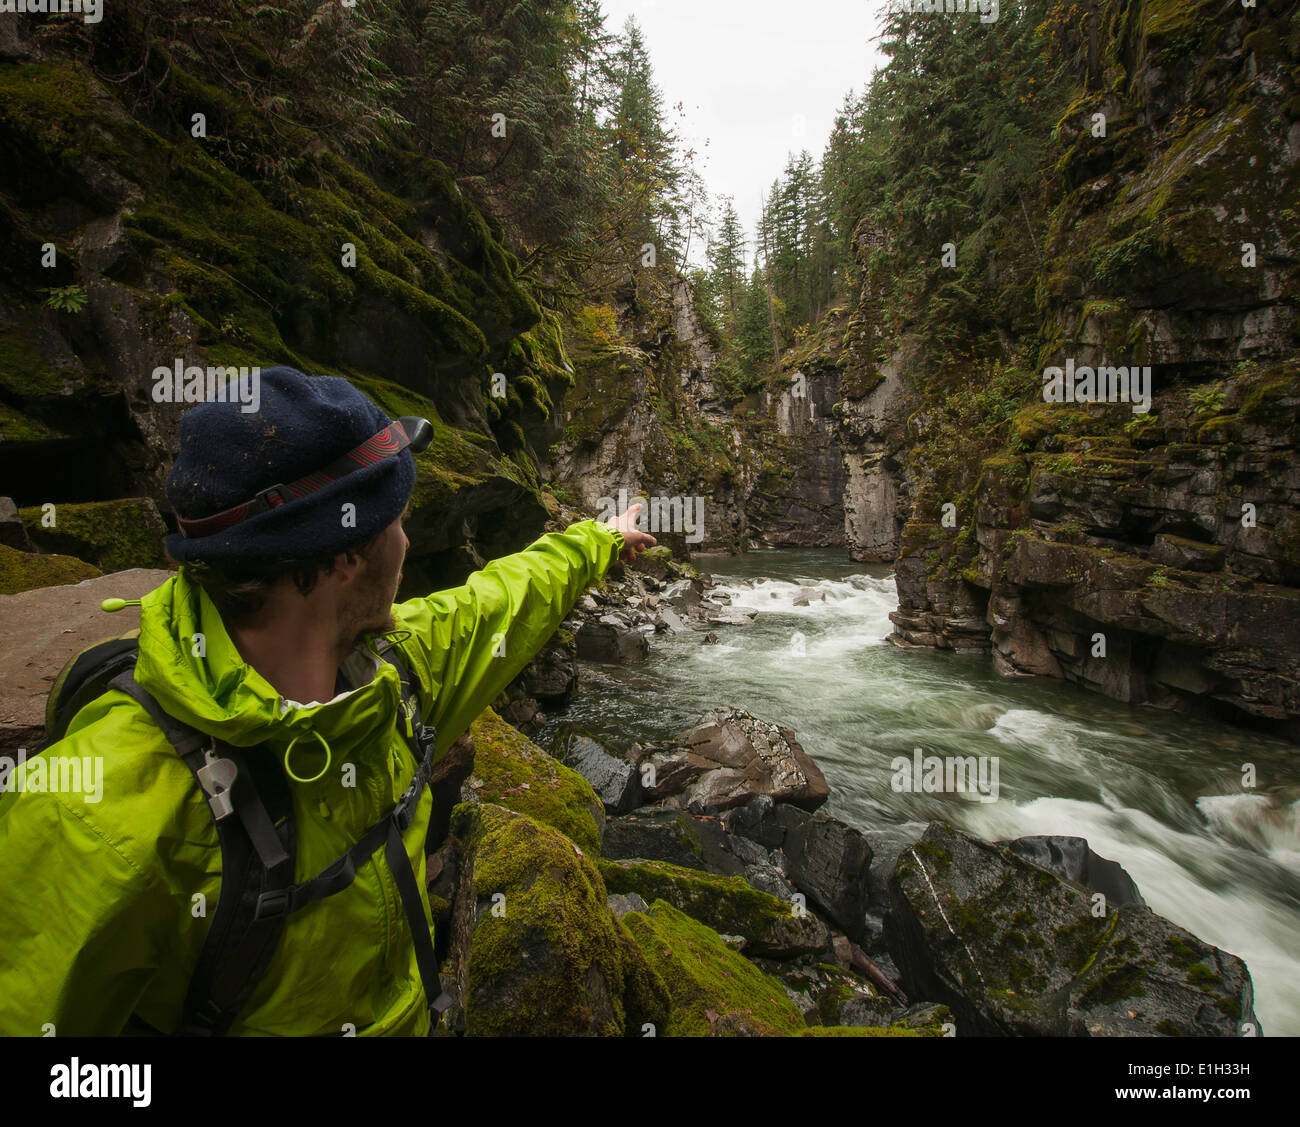 Hiker points cliffs, Coquihalla Canyon provincial Park and Othello Tunnels, Trans-Canada Trail, Hope, British Columbia, Canada - Stock Image